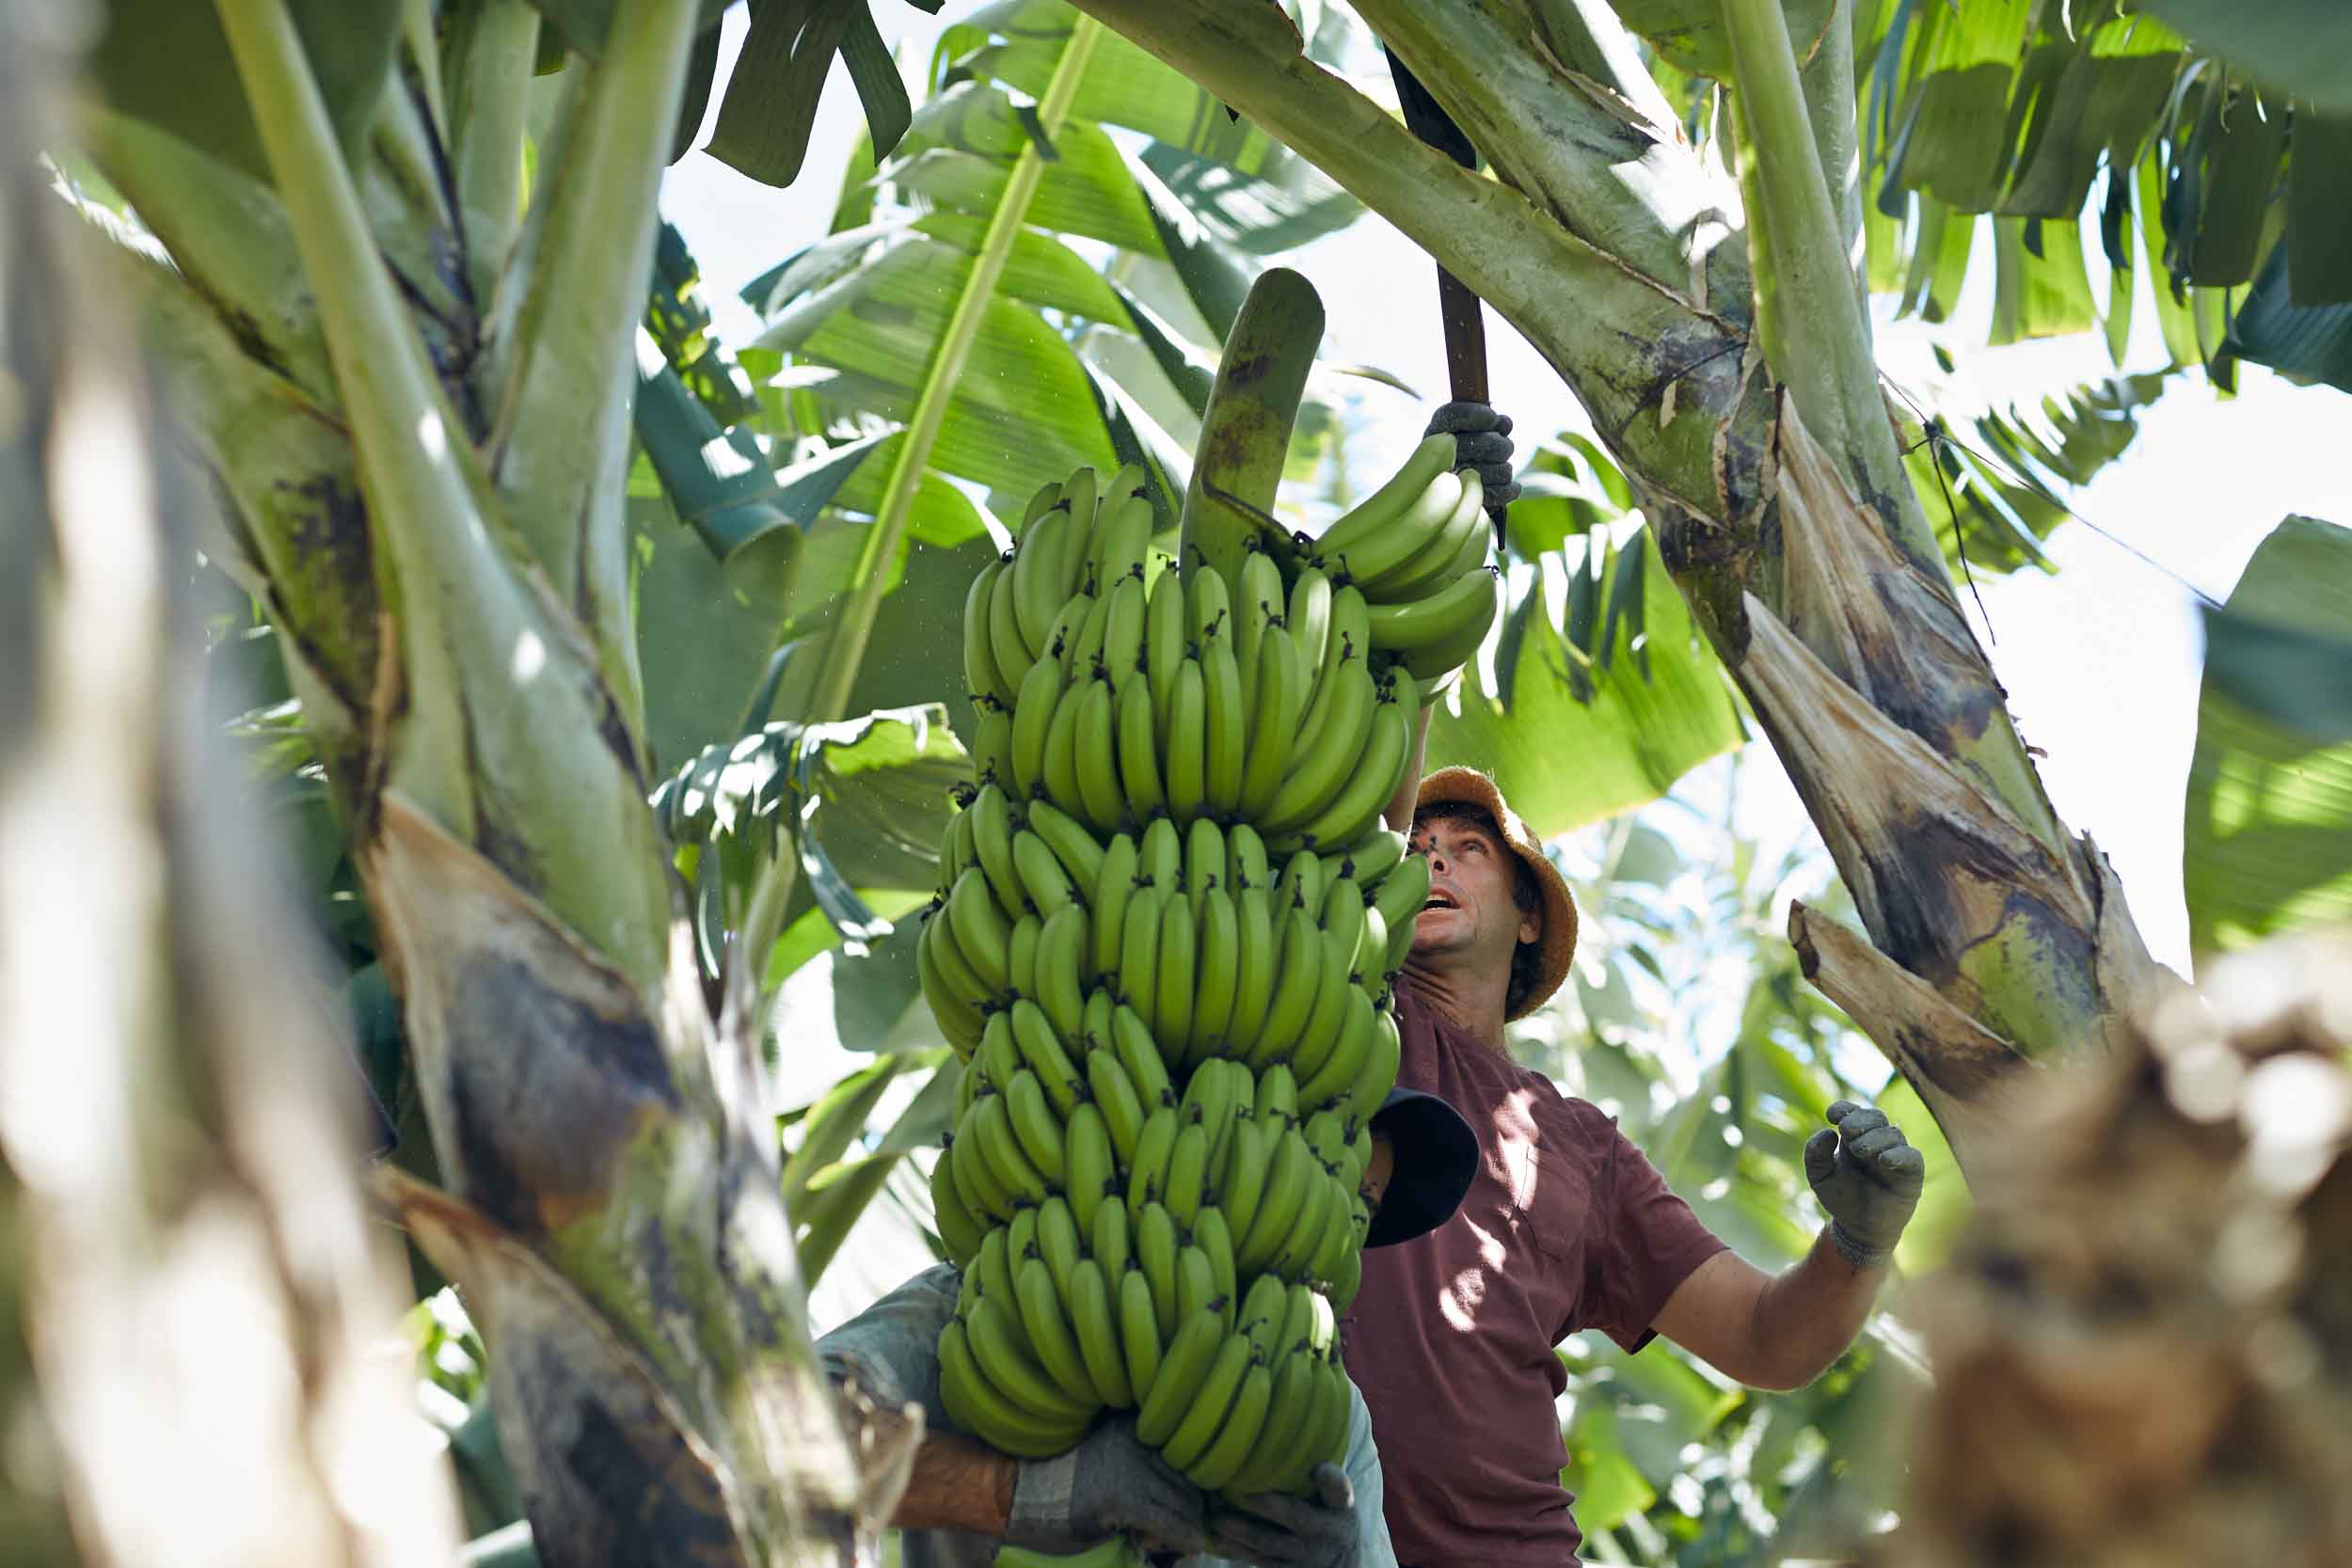 Bananas_Cairns_Portraits_Location_0333-2.jpg